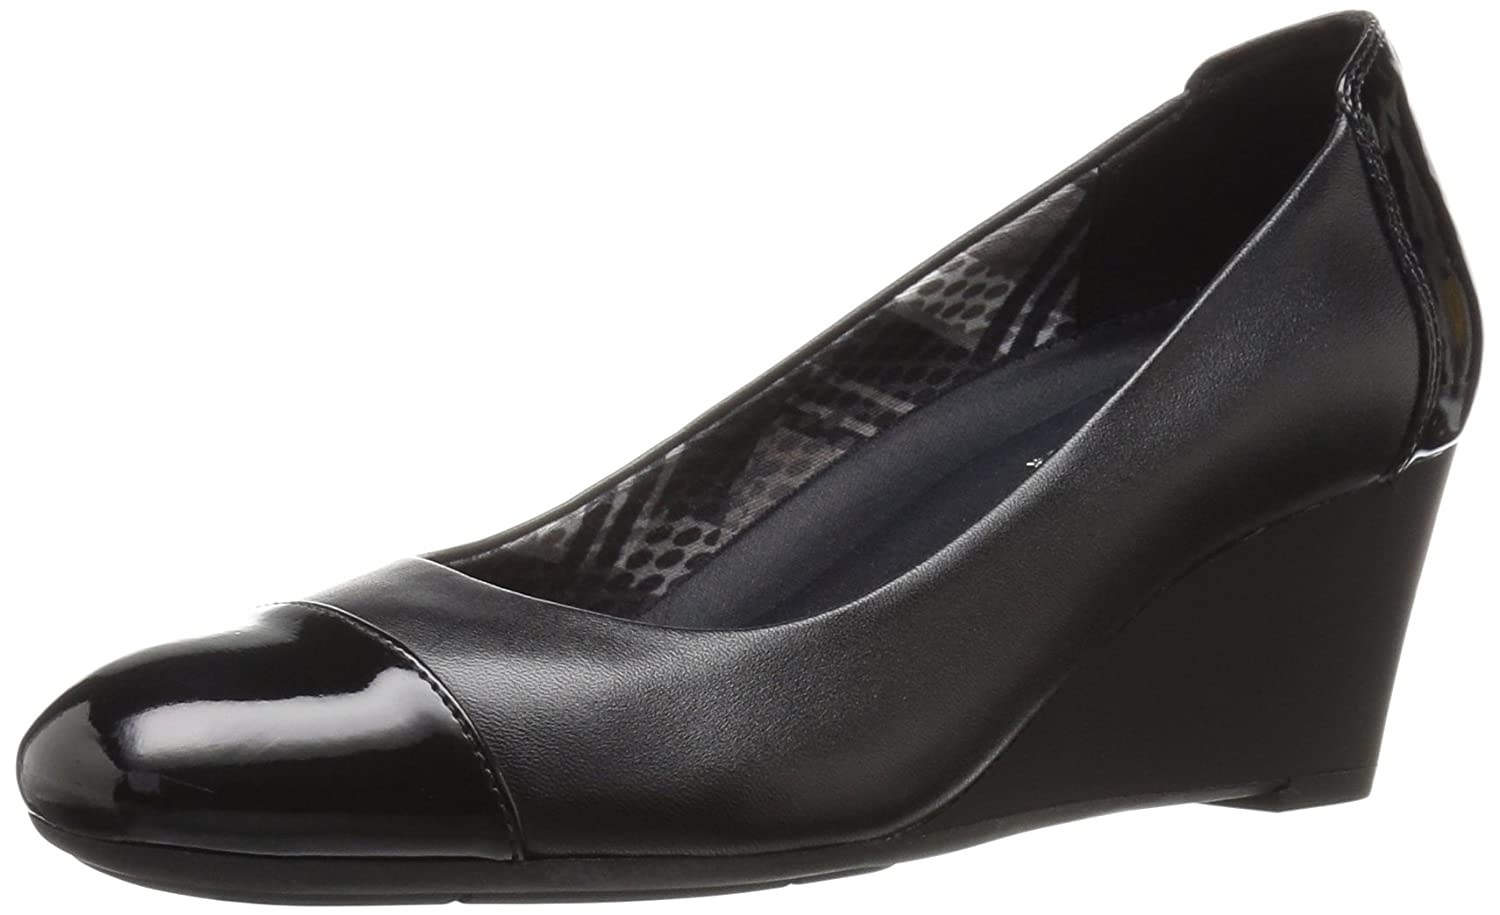 Naturalizer Necile Wedge Pump (Women's) LEACggK